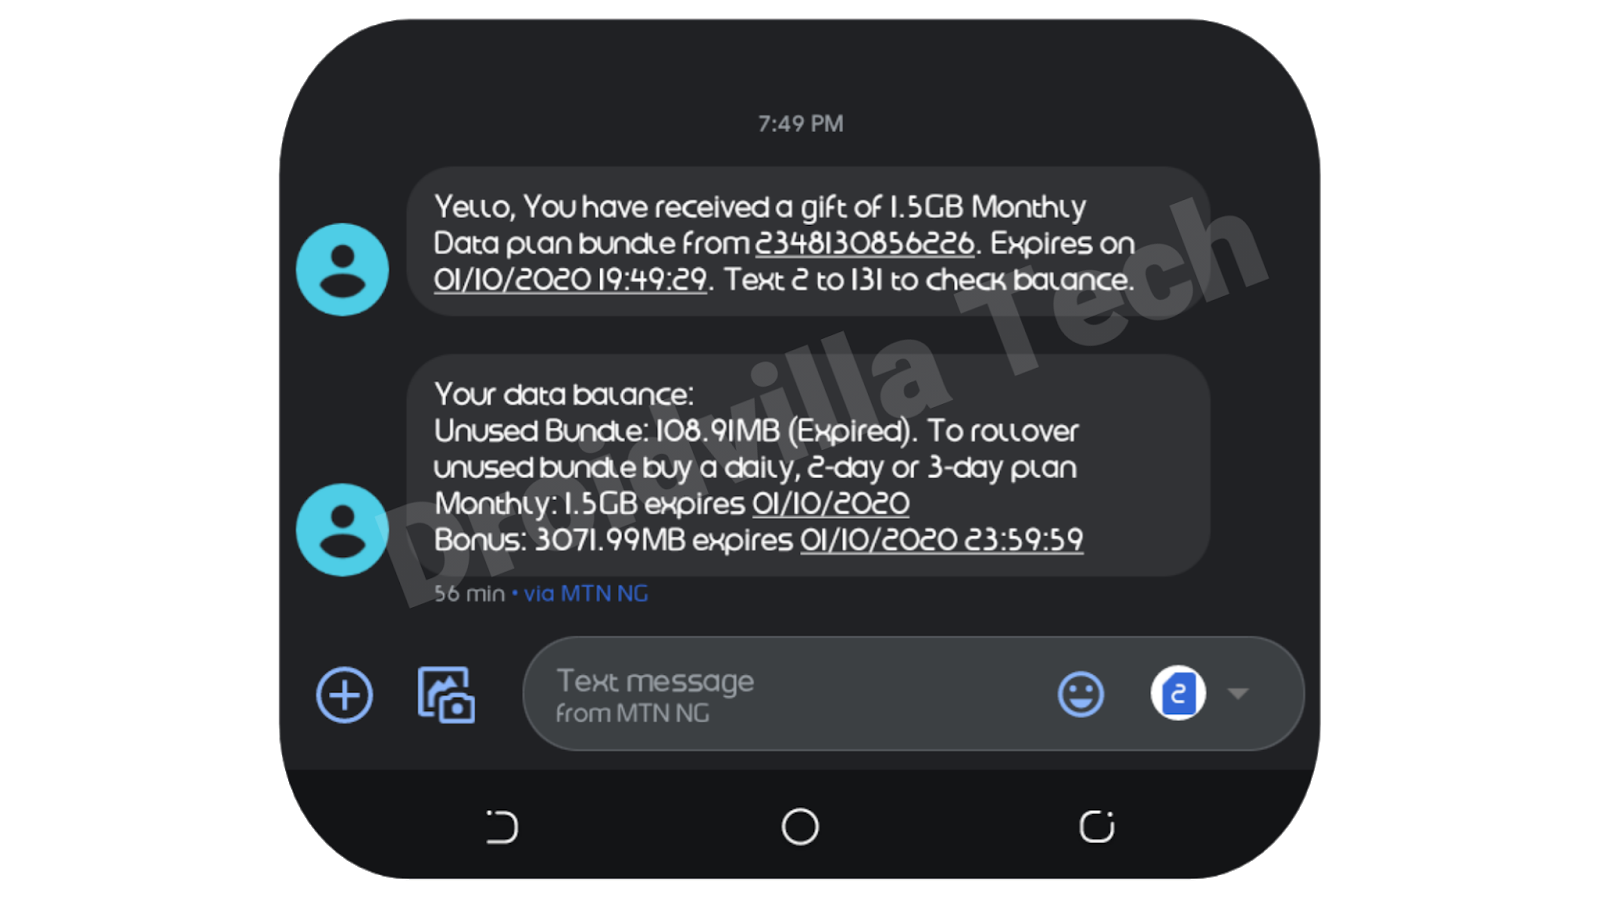 Awoof! How To Get Free MTN 3GB LTE Data Bonus